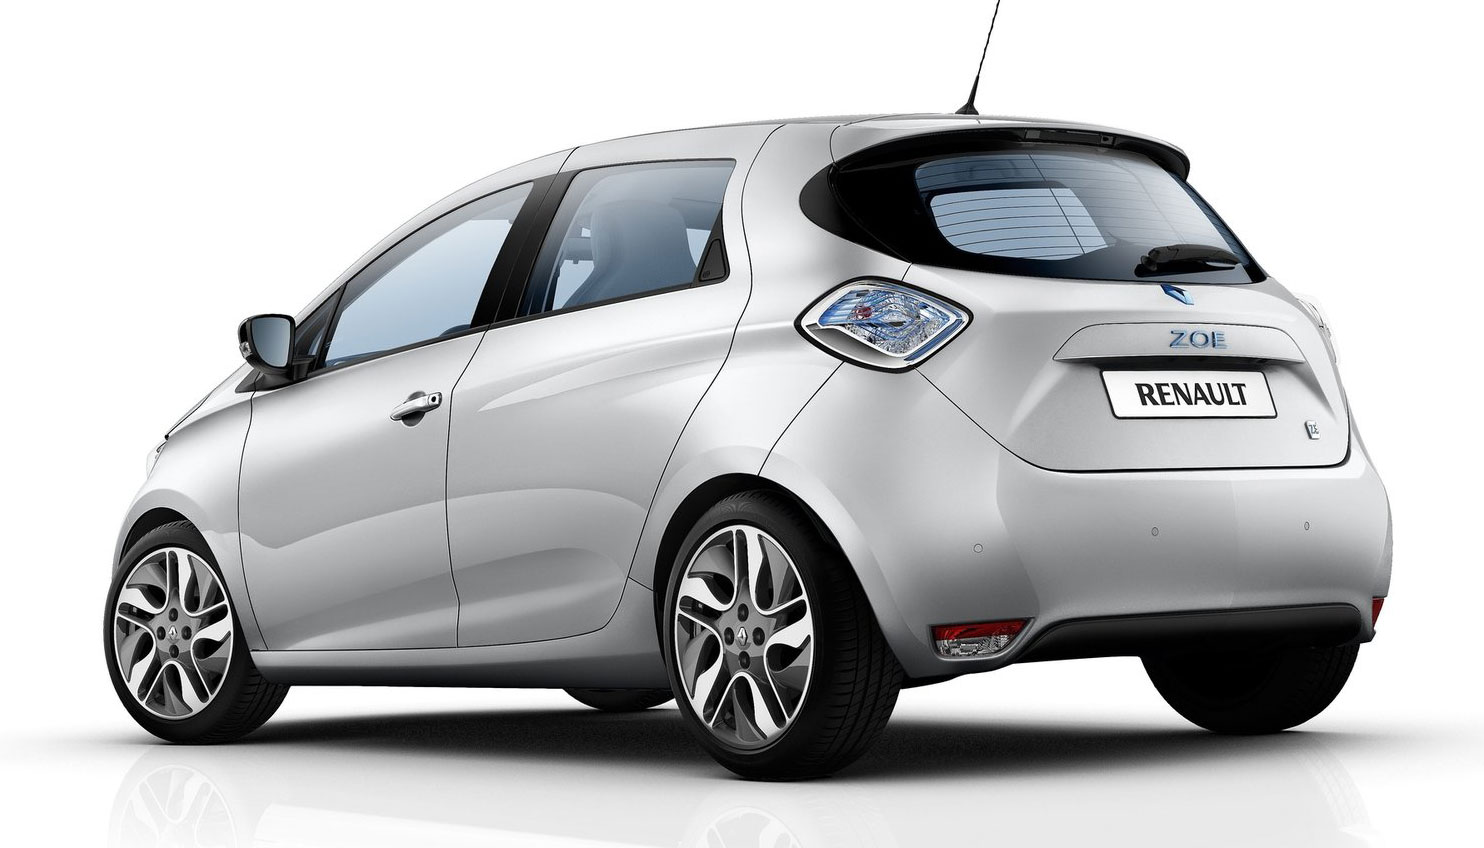 renault zoe electric car launched 210 km nedc range image 91649